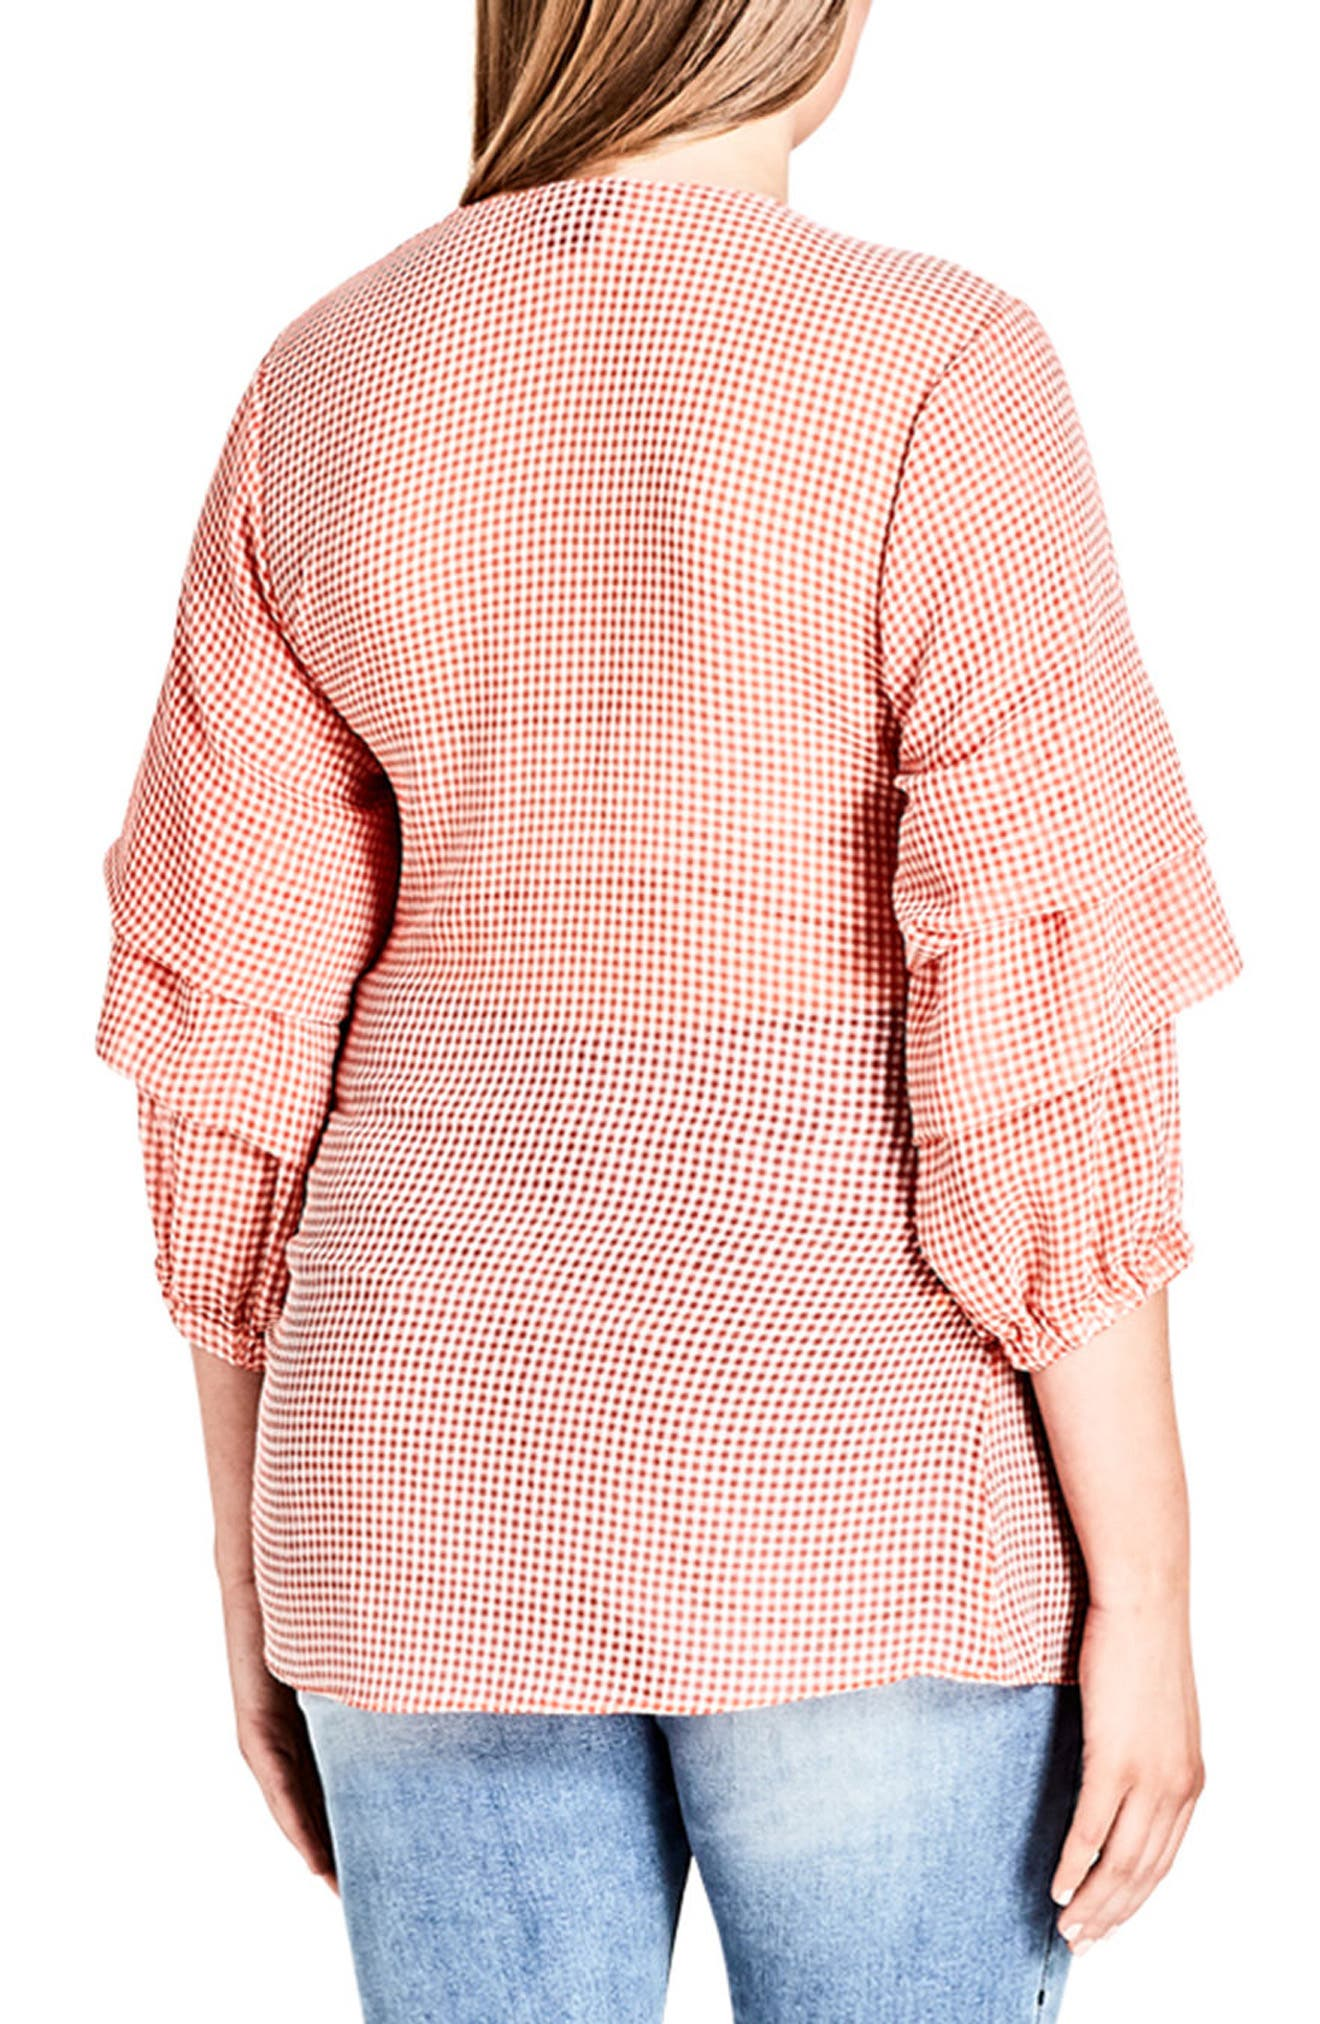 Alternate Image 2  - City Chic My Desire Check Print Wrap Top (Plus Size)